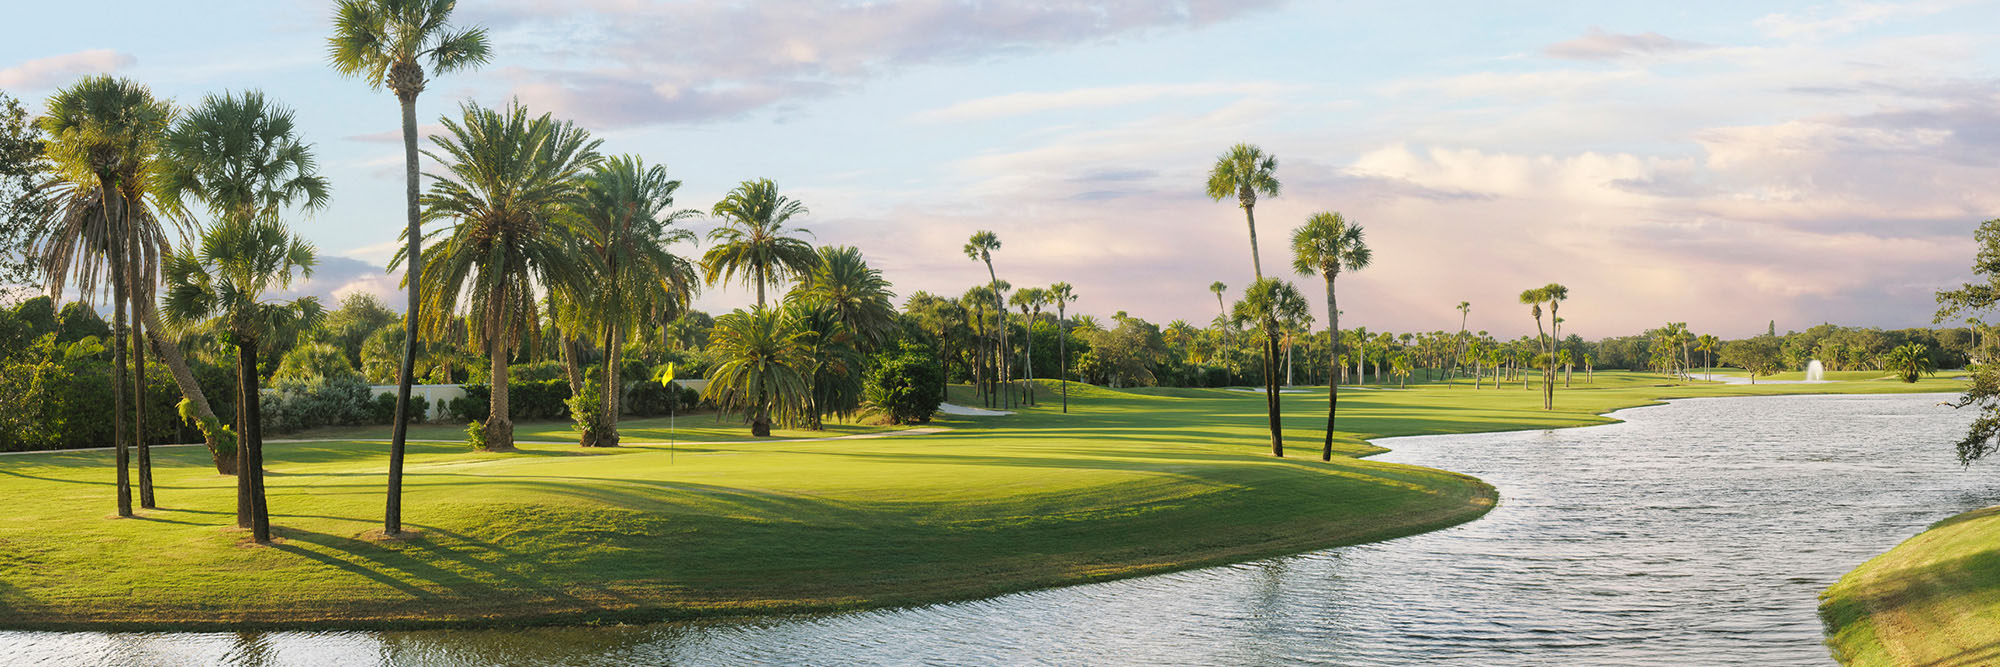 Golf Course Image - Riomar No. 14